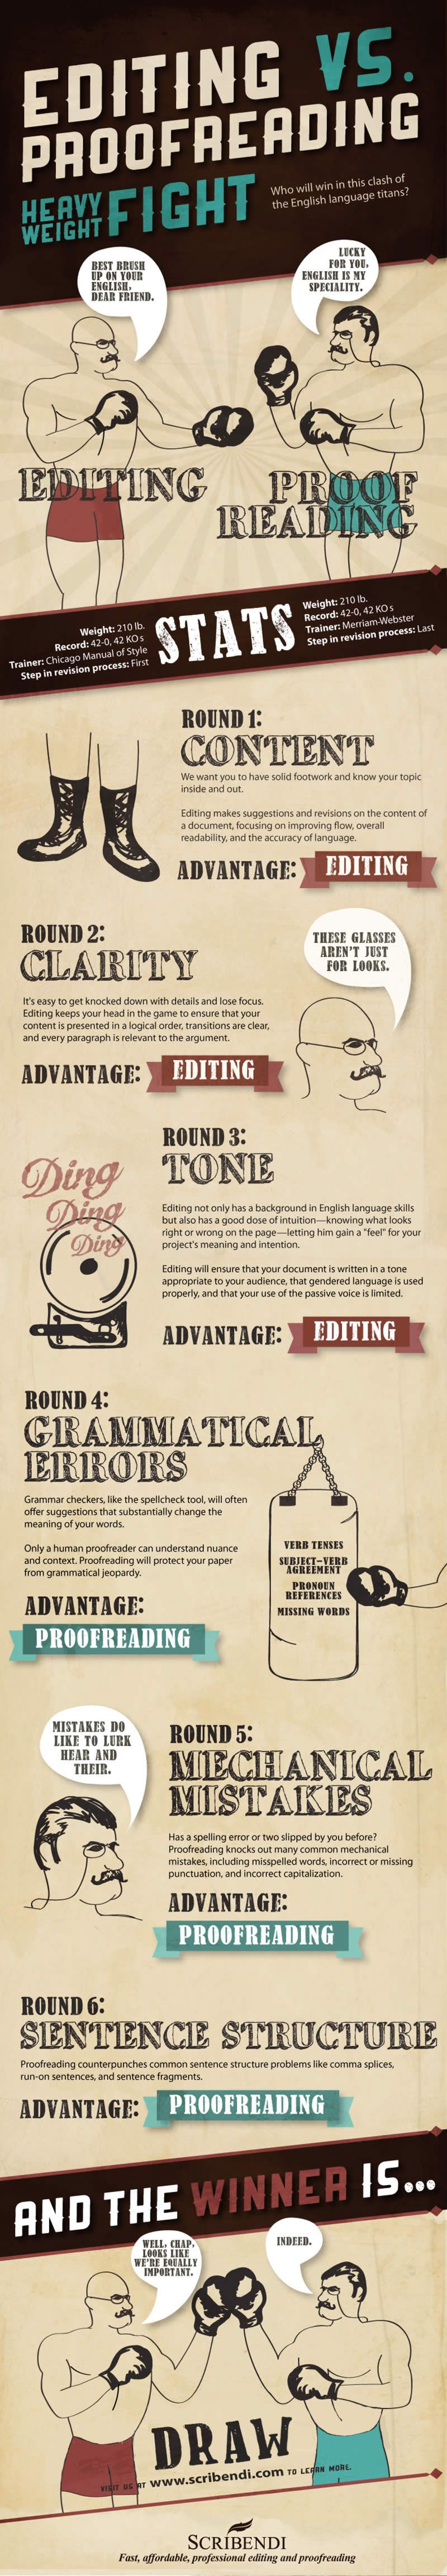 Editing vs. Proofreading #Infographic